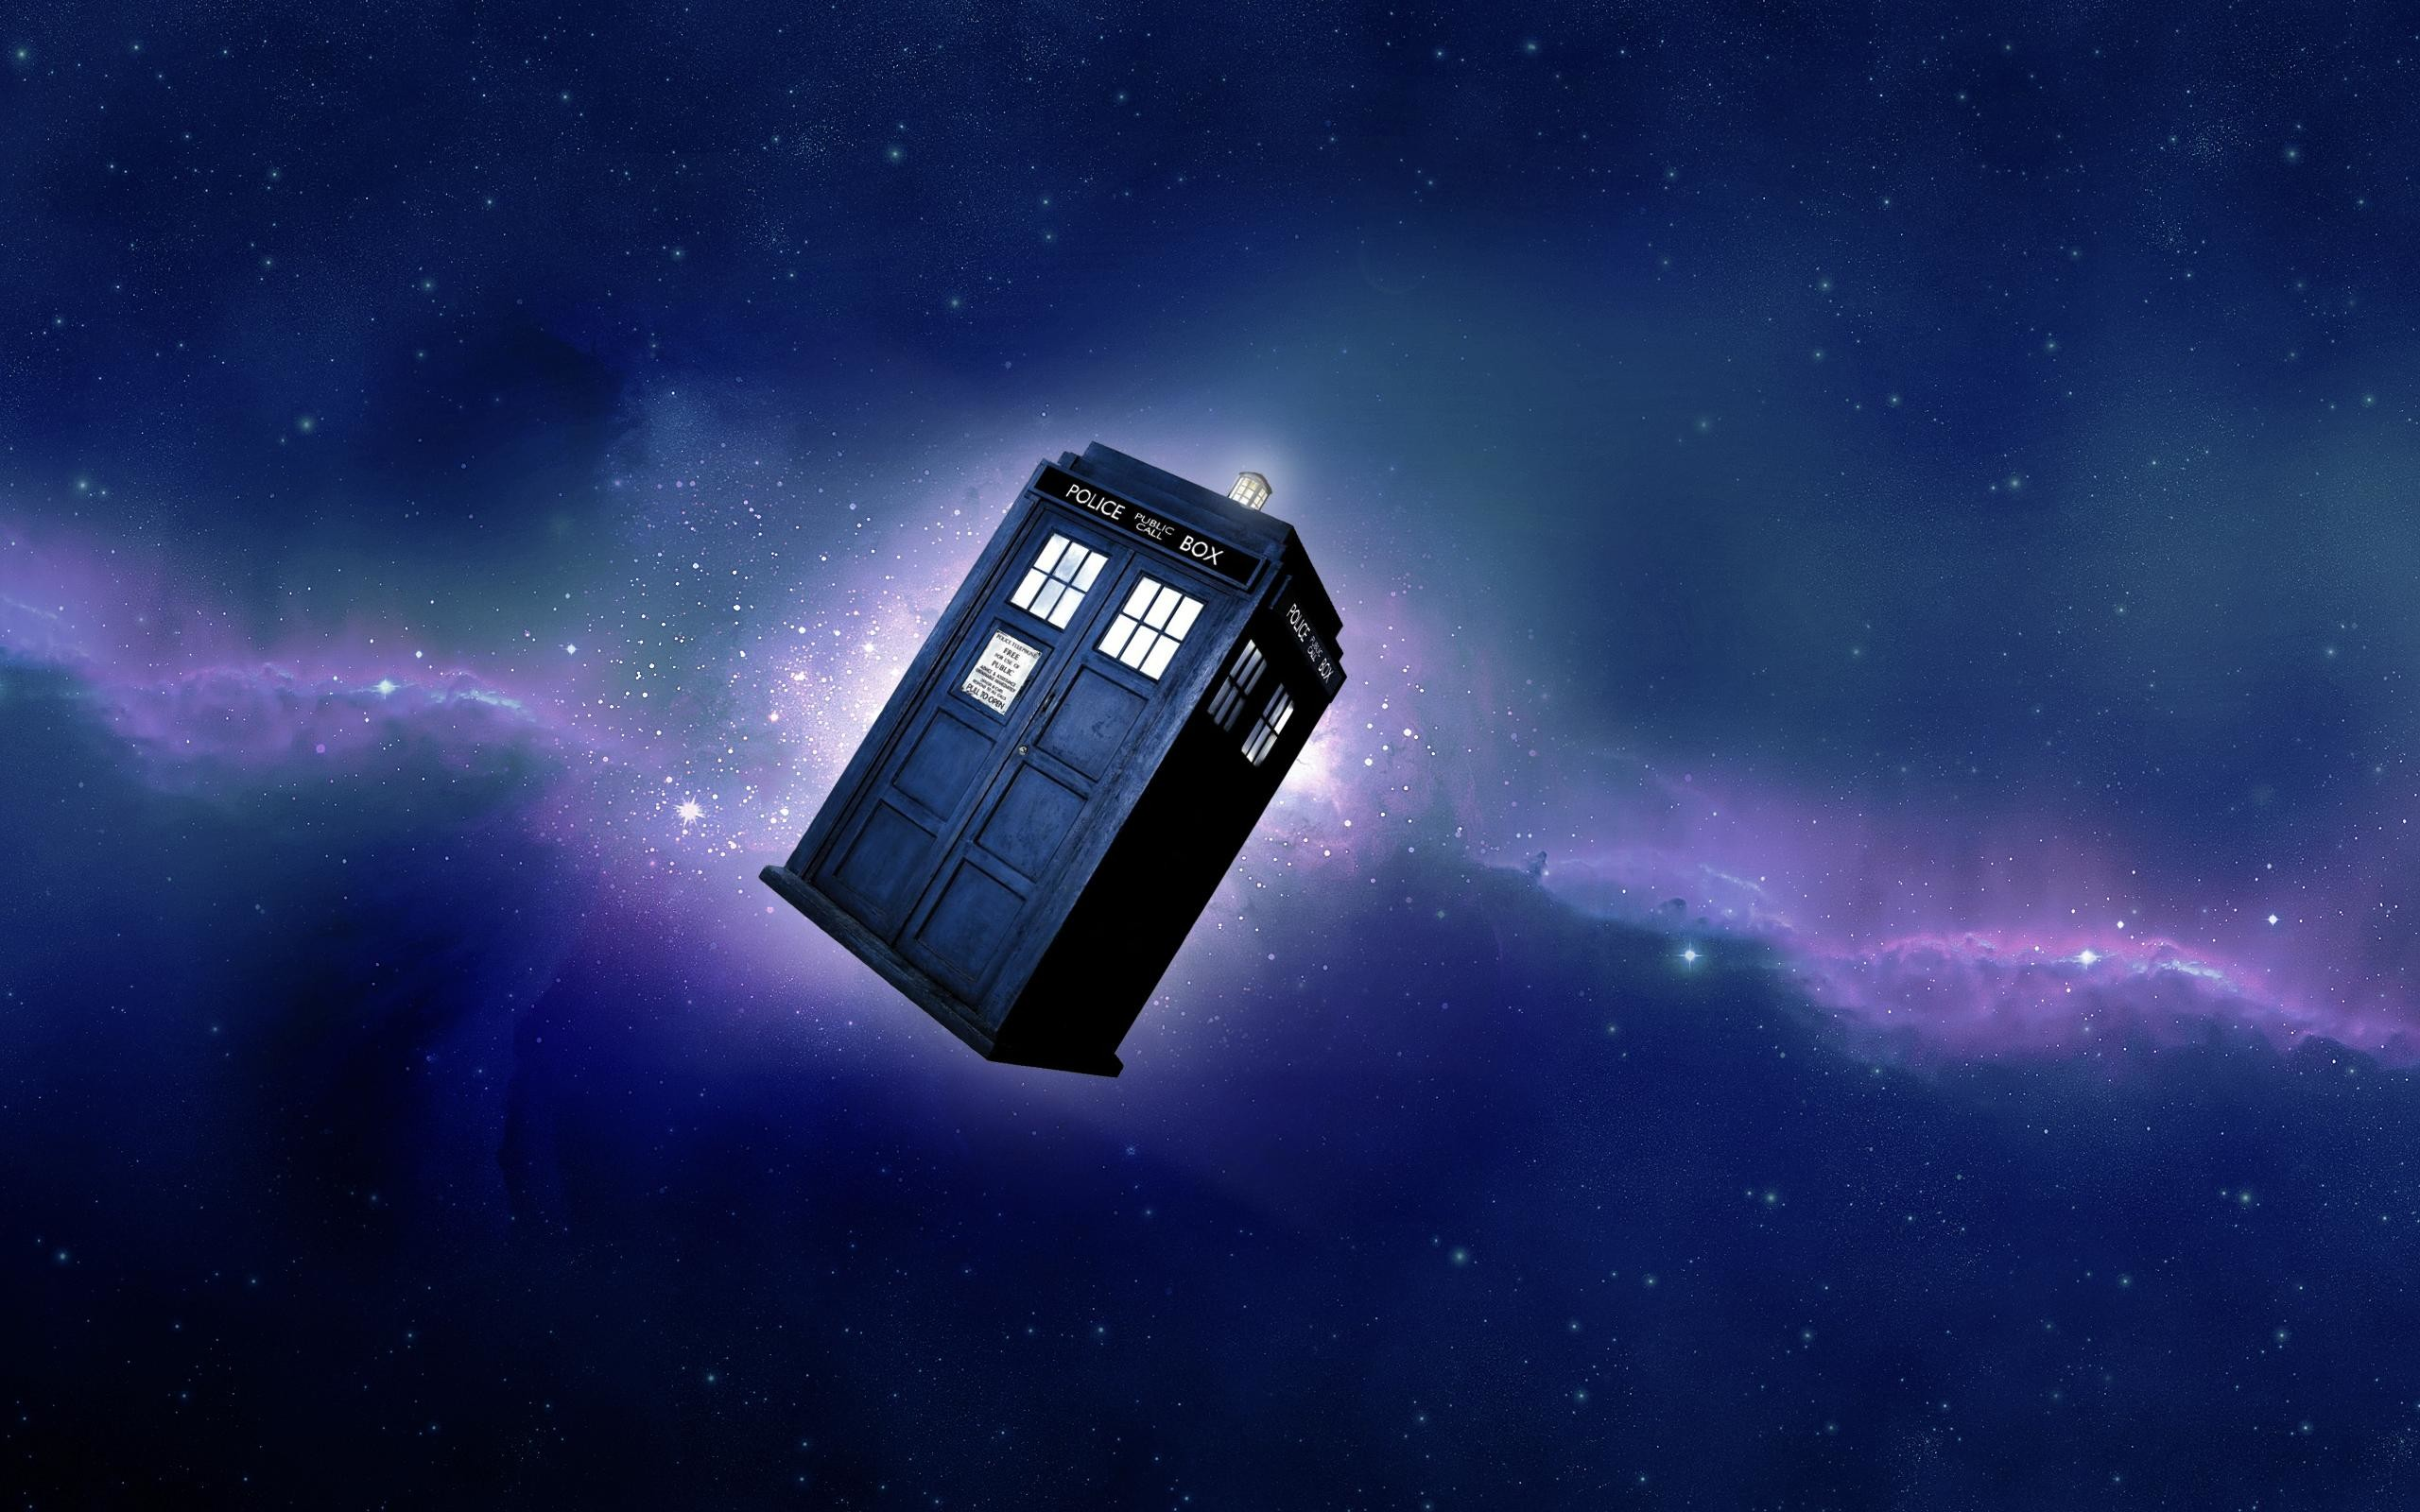 Doctor who tardis wallpapers 78 images - Dr who wallpaper ...